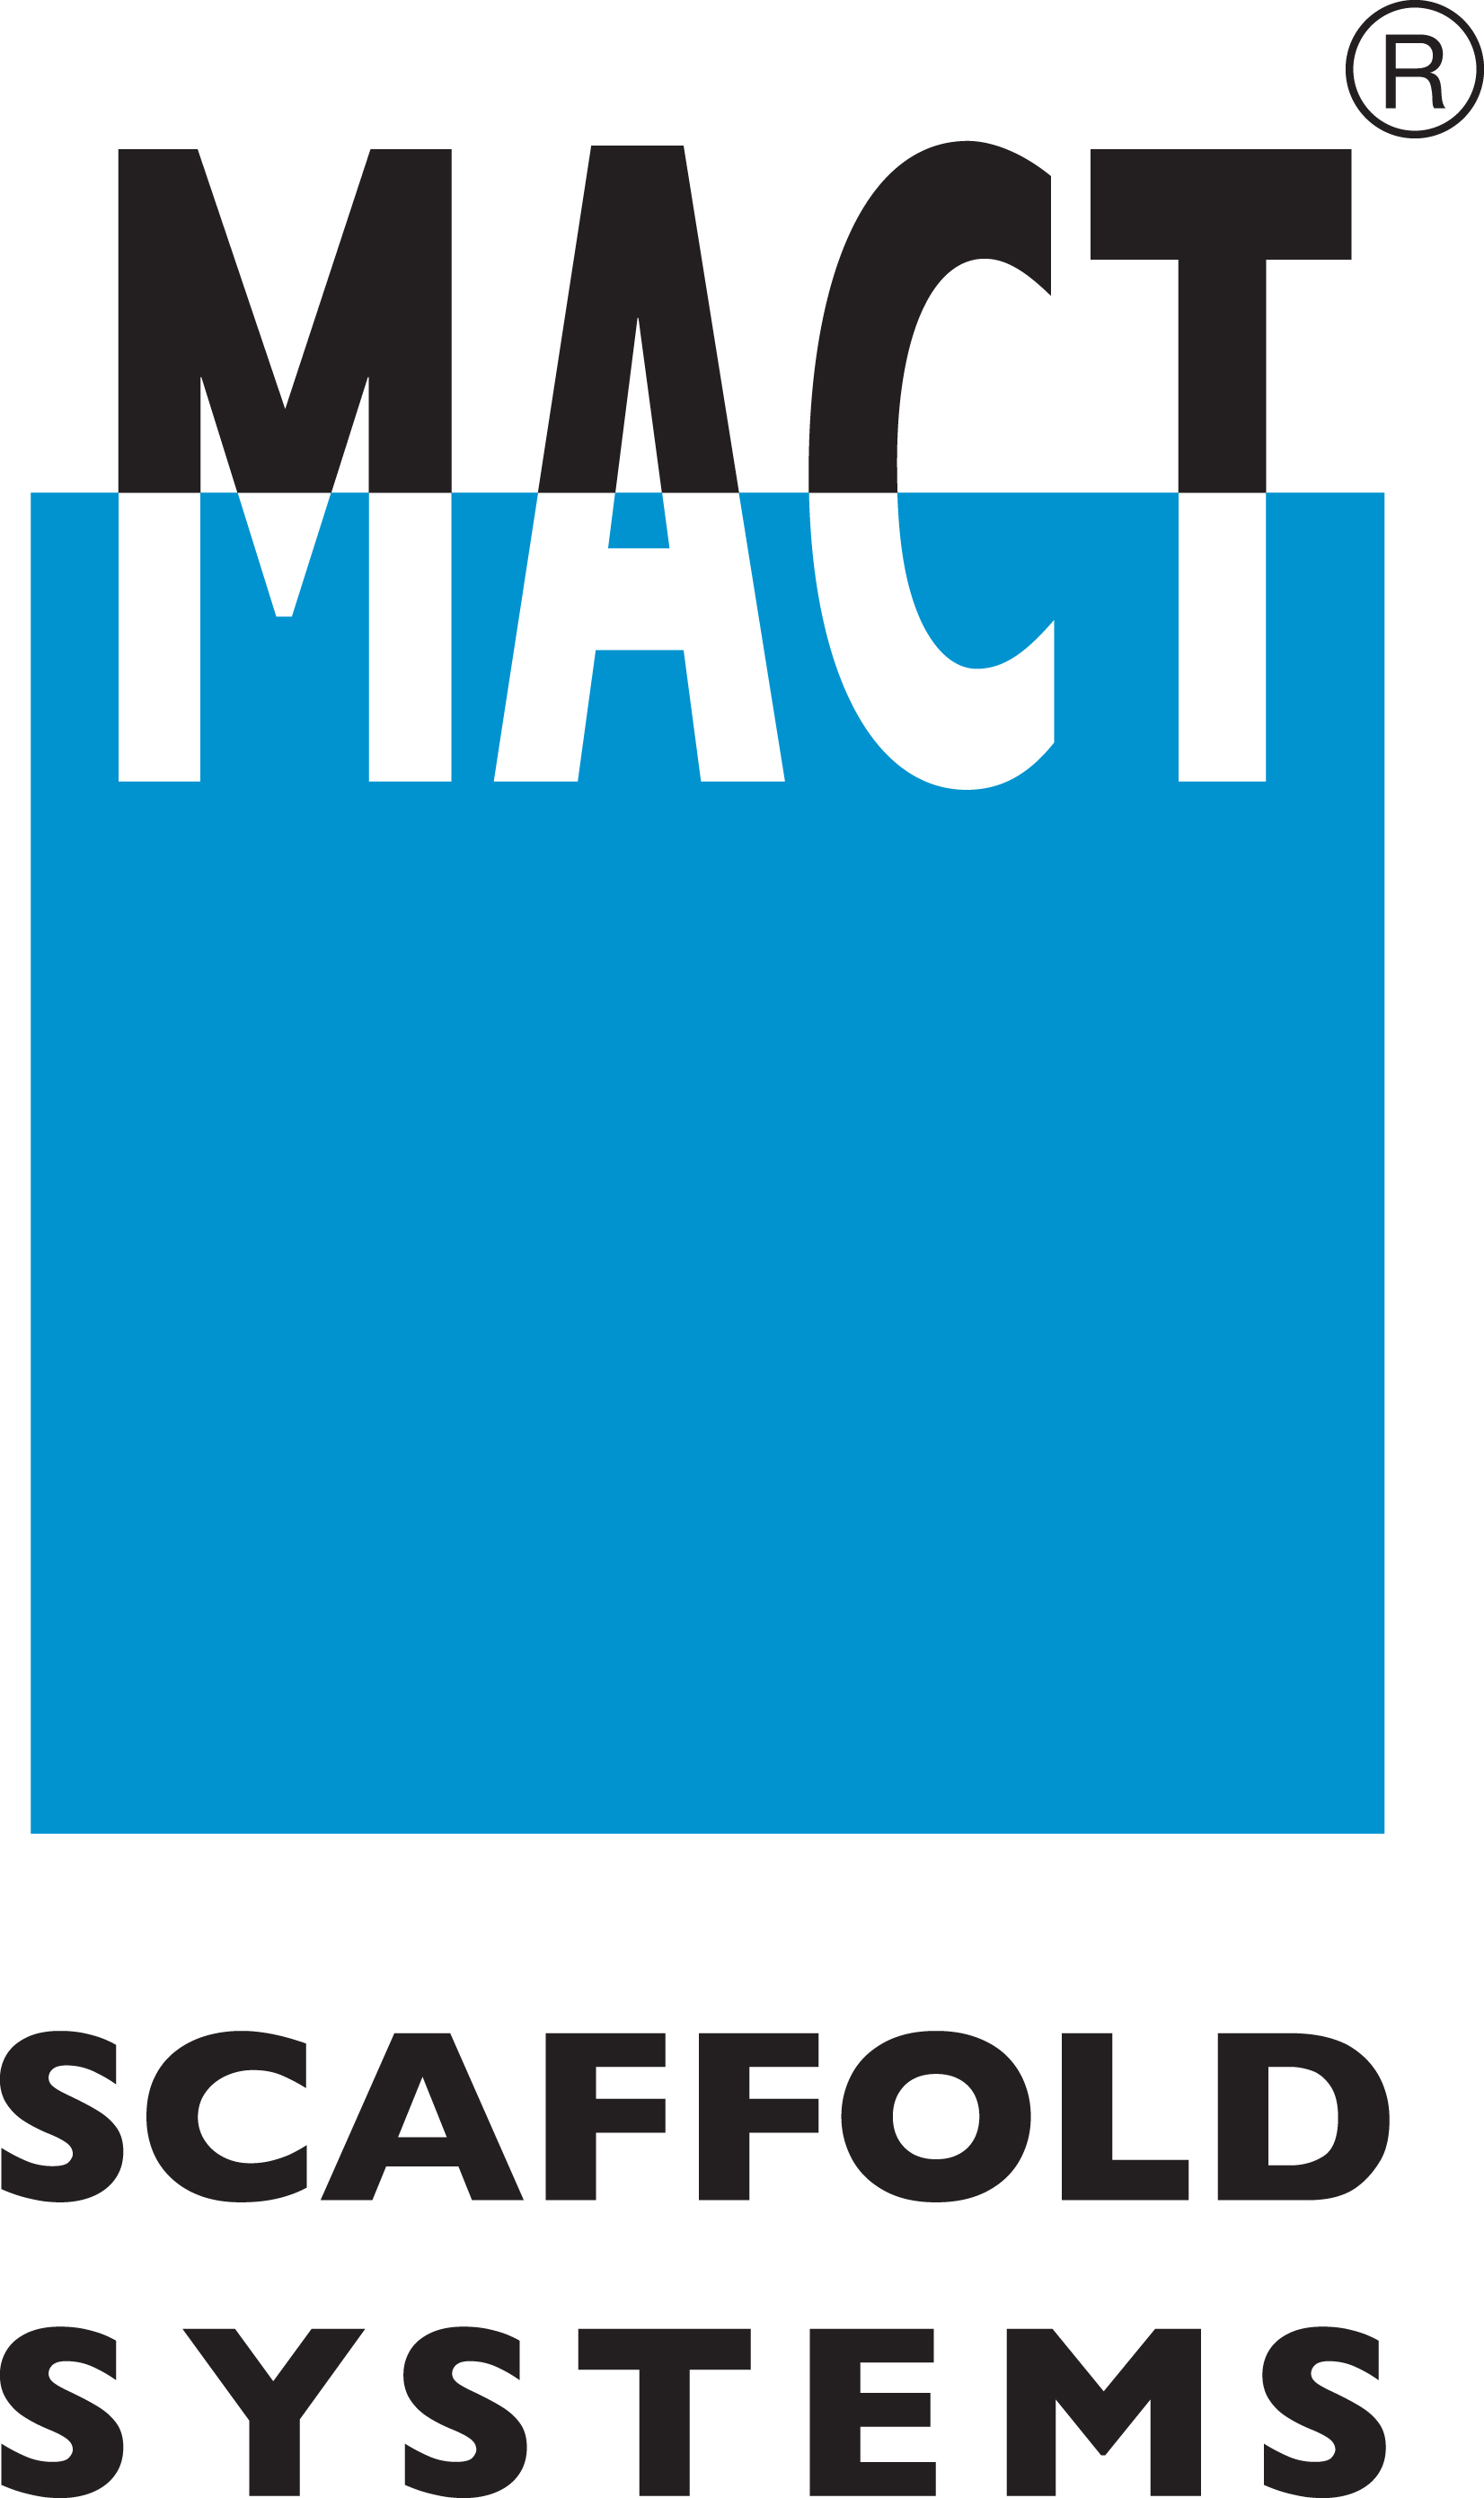 Mact Scaffold Systems logo